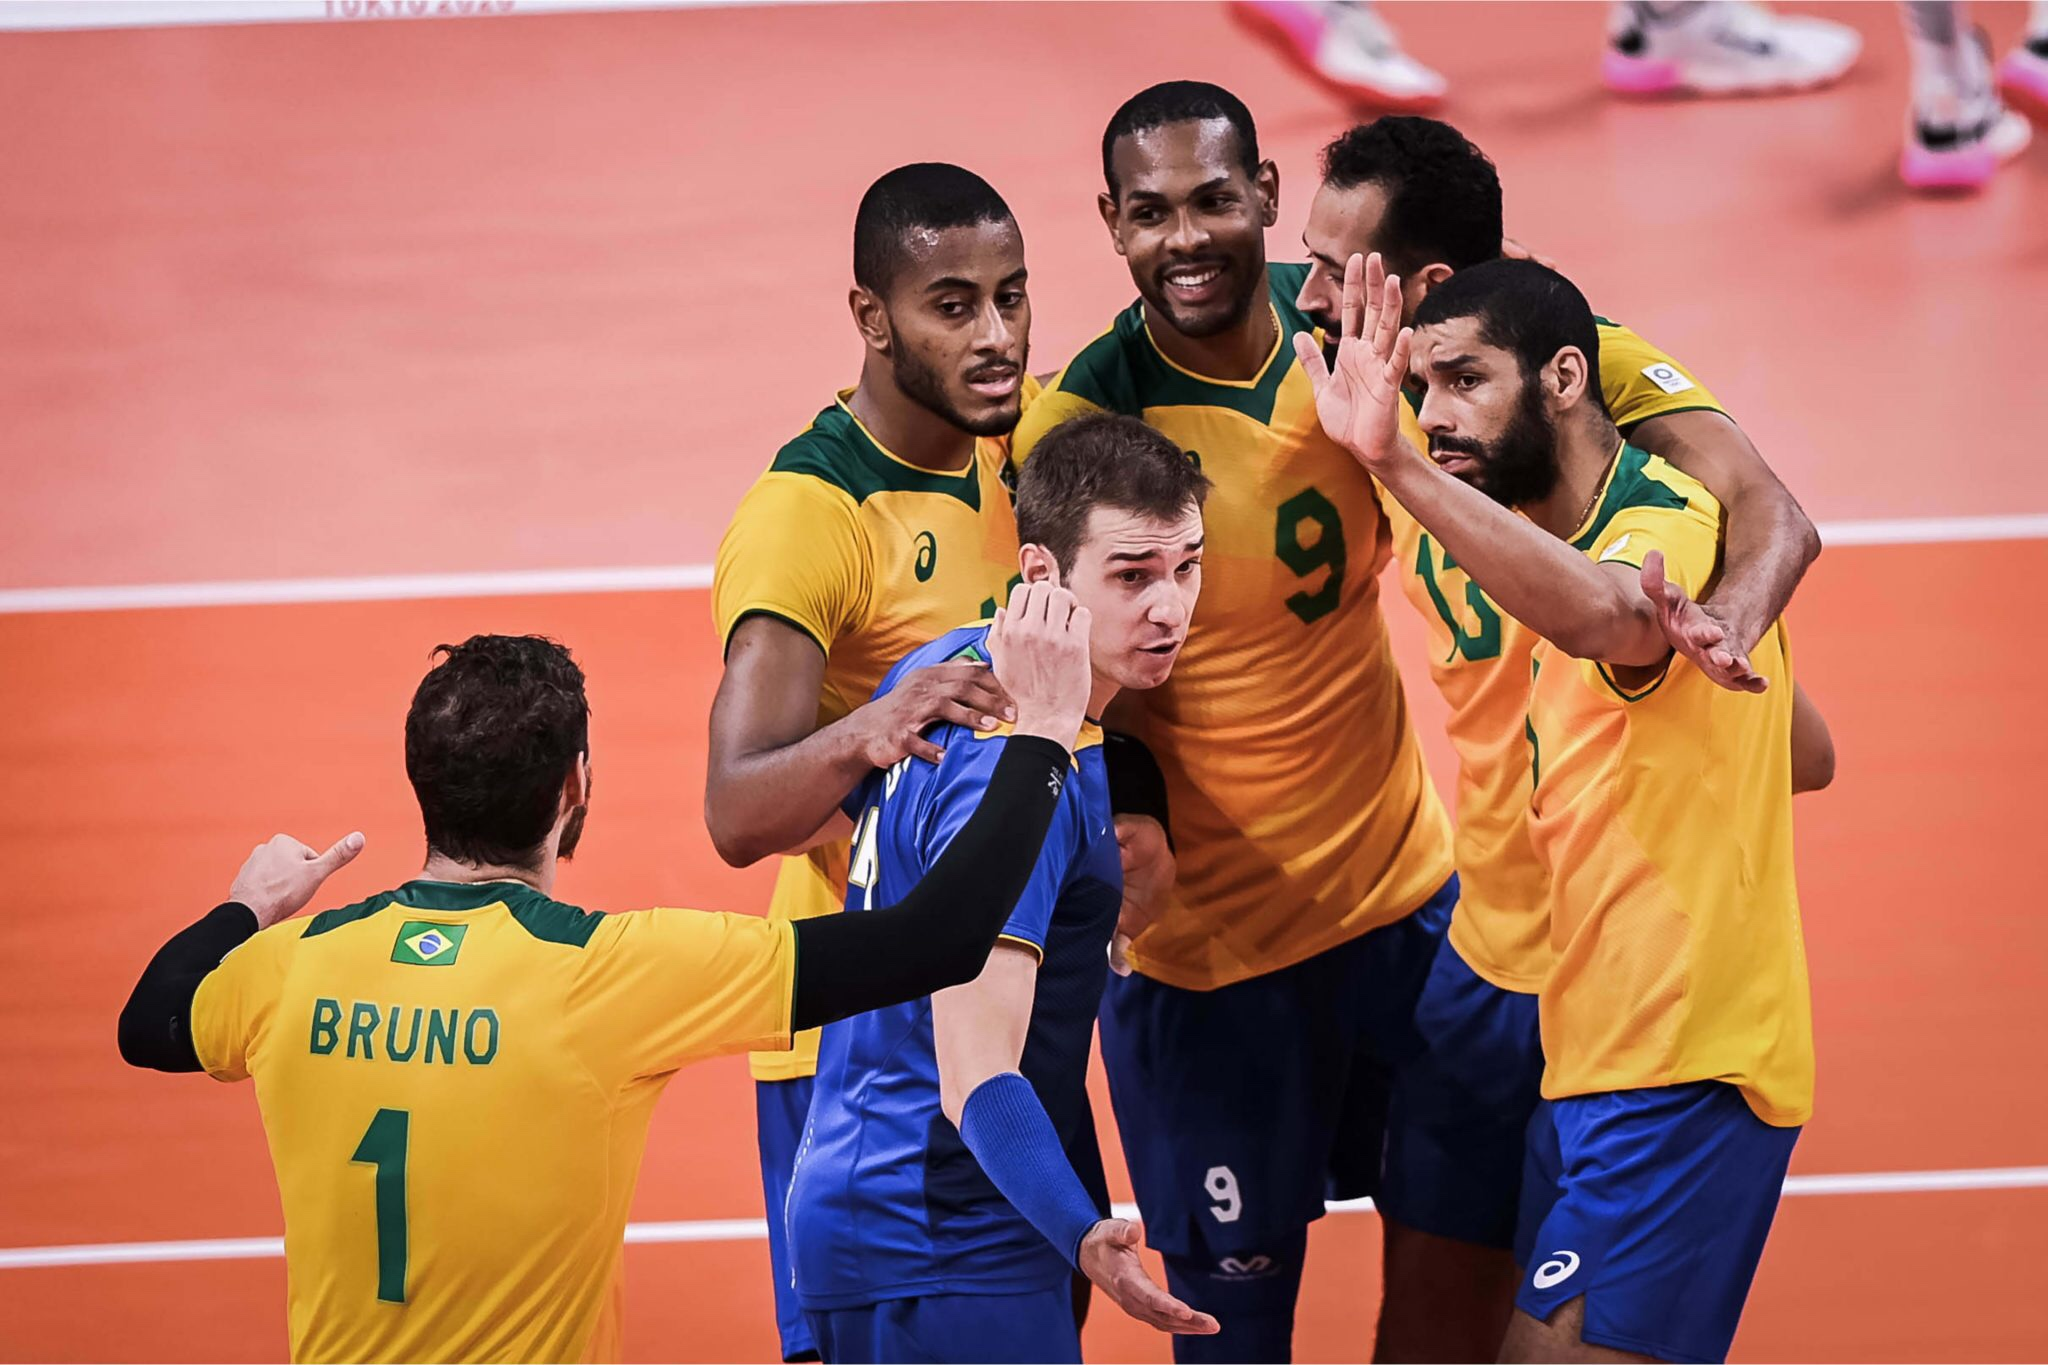 Tokyo 2020: Day 4 – Brazil, Poland and Italy first quarterfinalists. Wins also for Canada, Argentina and France